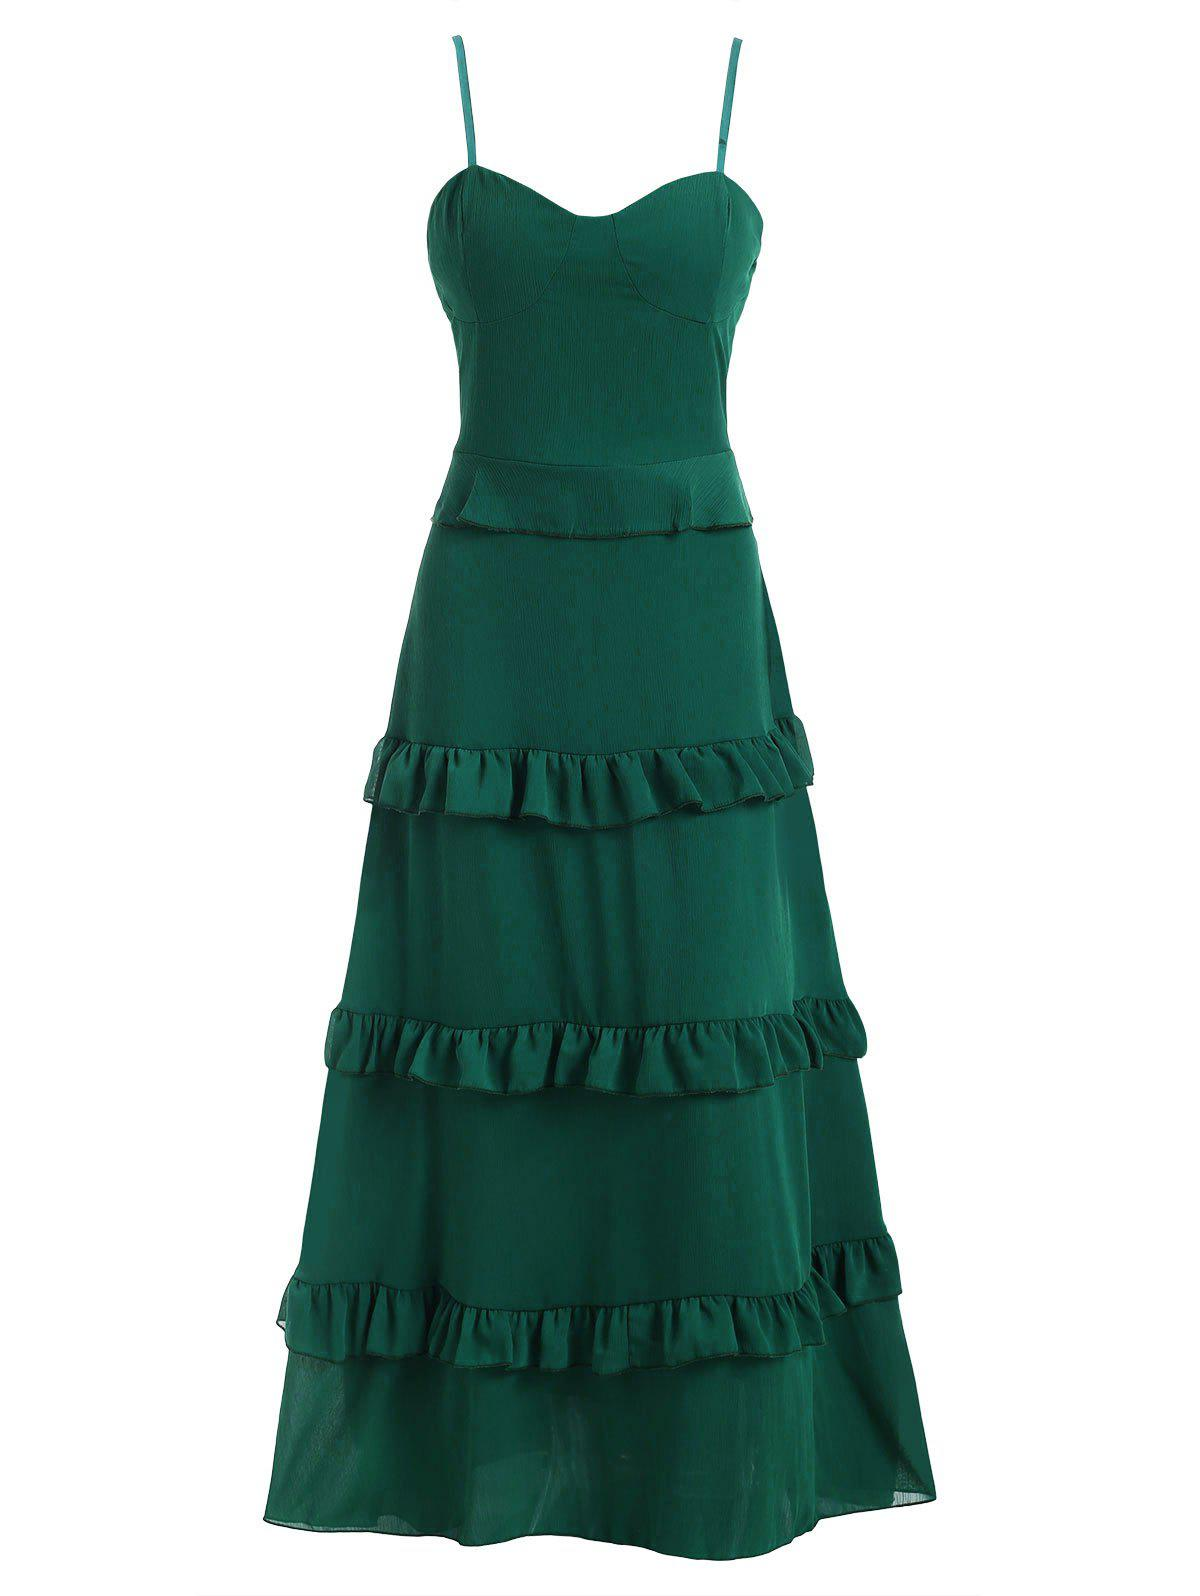 Tiered Ruffle Padded Floor Length Chiffon Dress - MEDIUM FOREST GREEN M